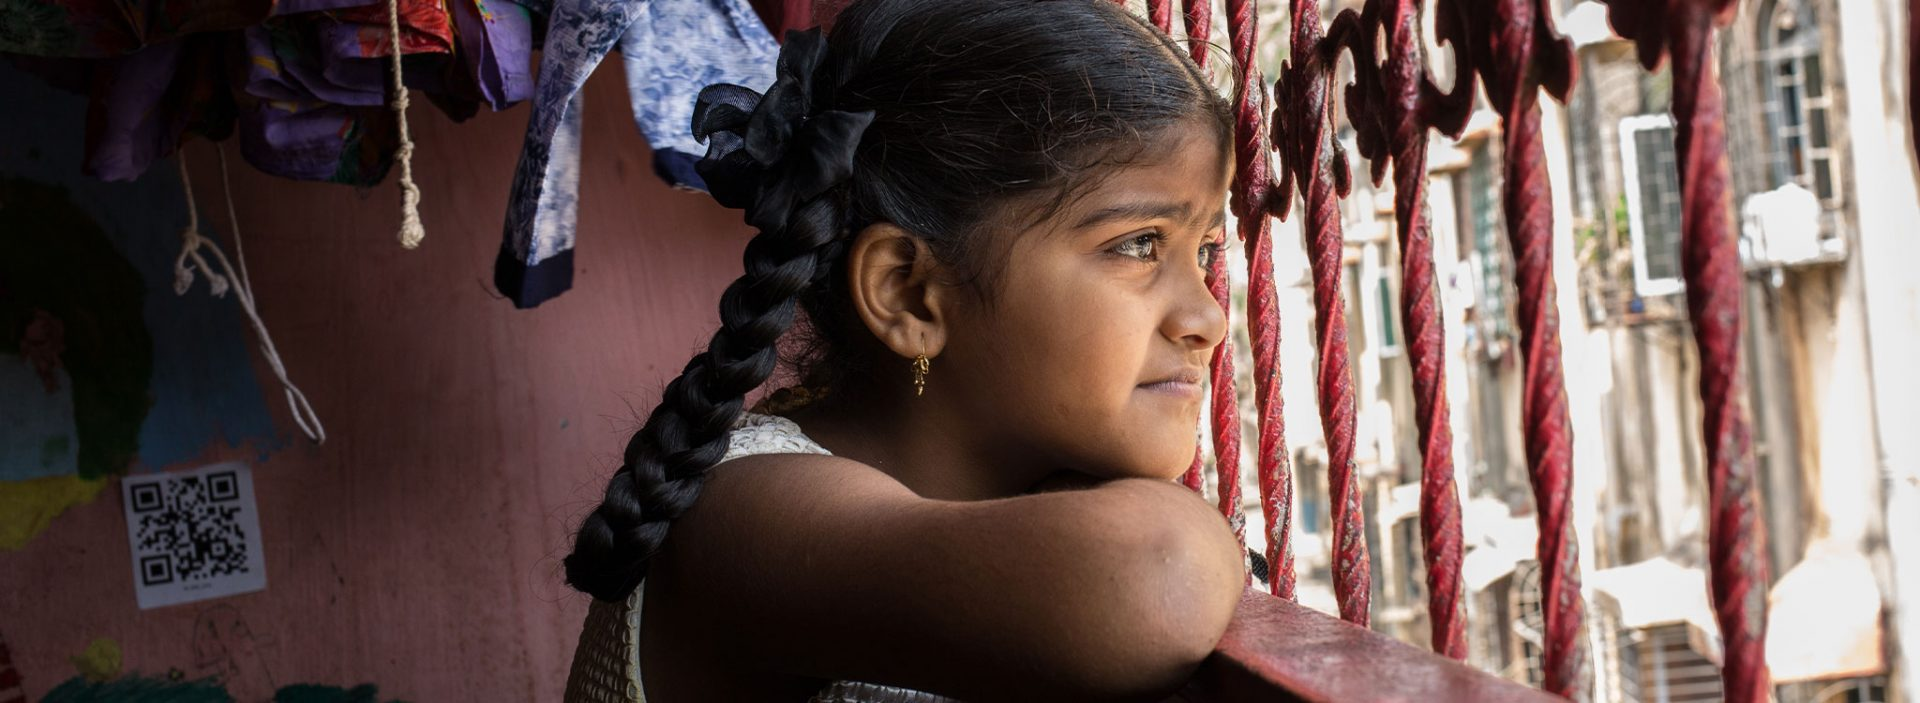 A young girl looks out of the window in India